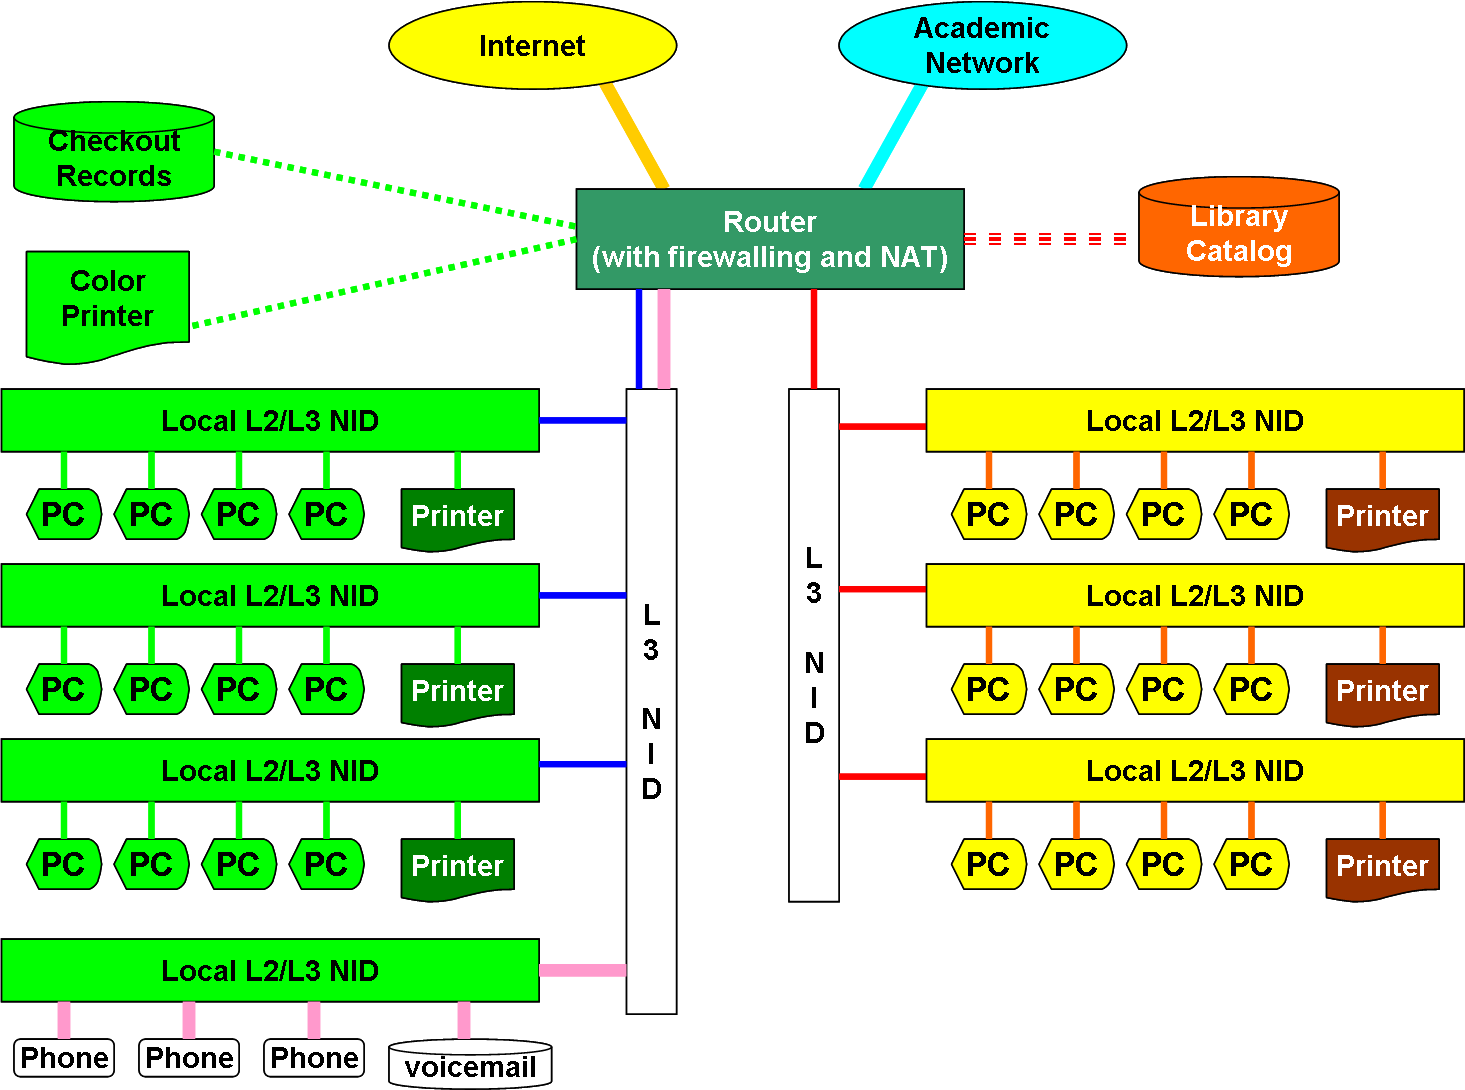 File:NETWORKLibraryLAN.png  Wikipedia